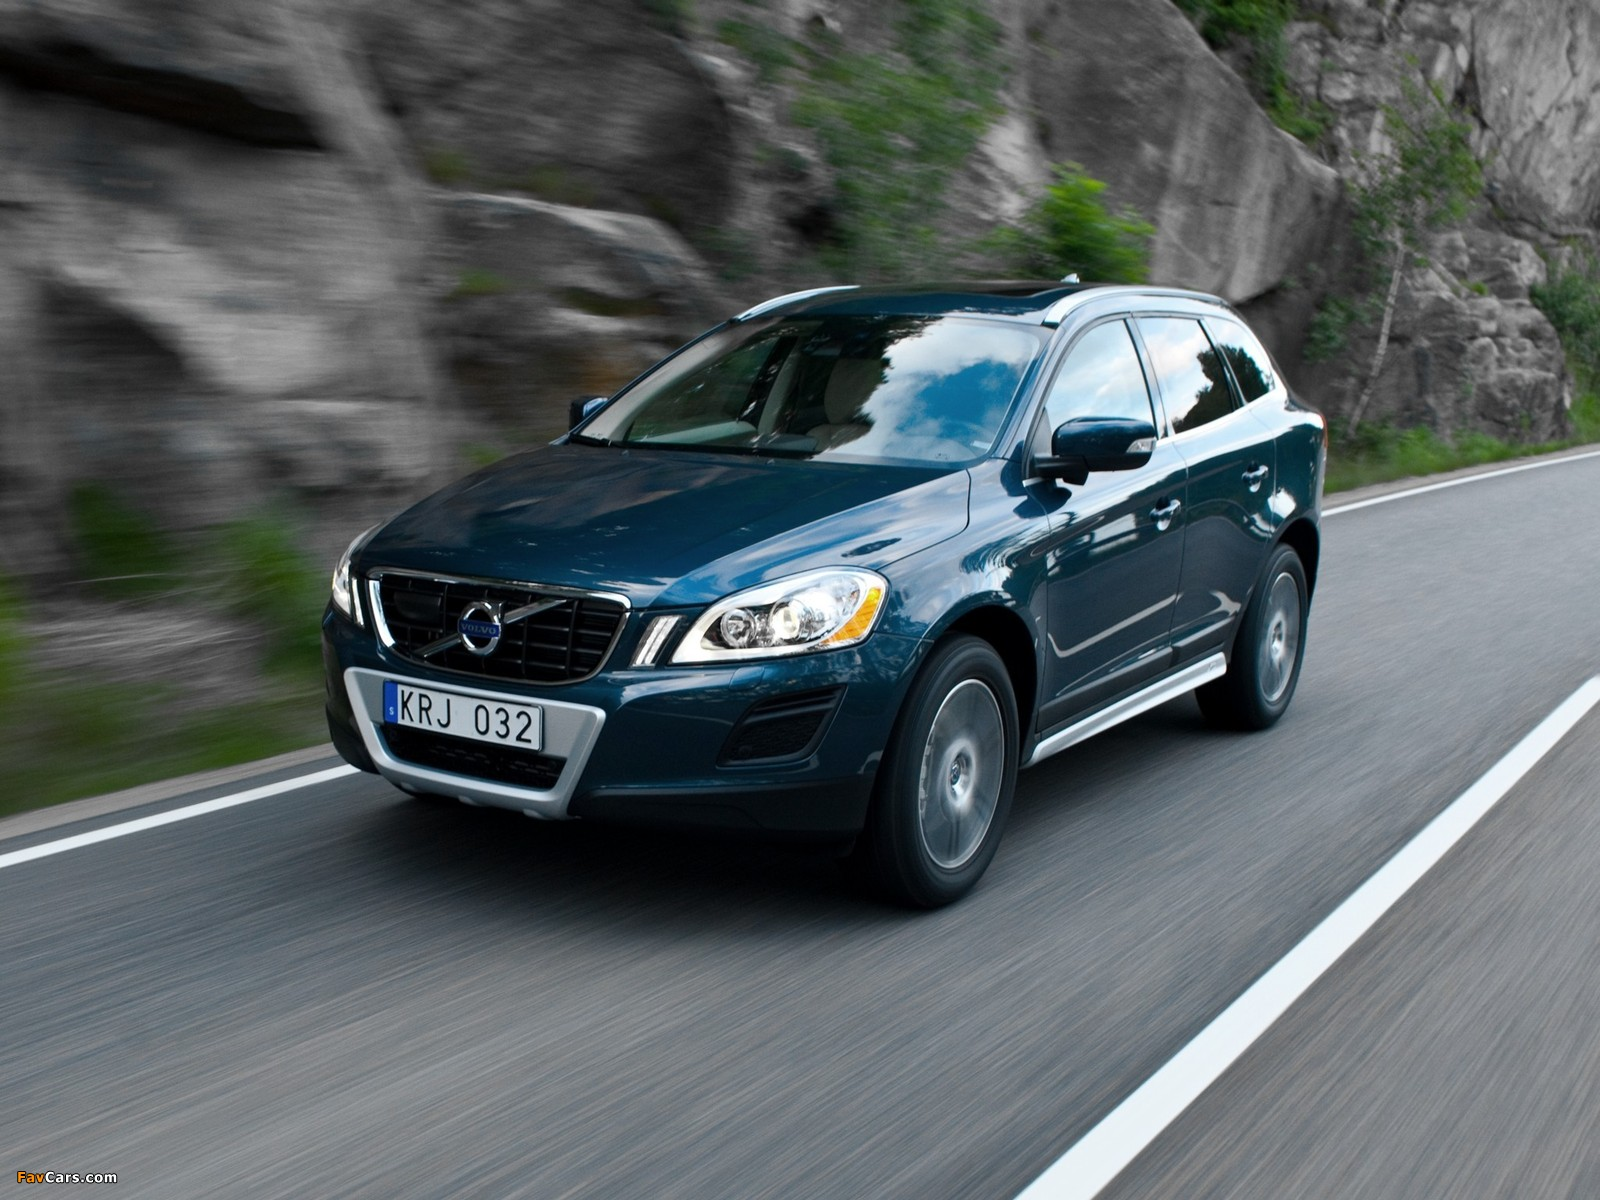 volvo xc60 d3 2009 images 1600x1200. Black Bedroom Furniture Sets. Home Design Ideas